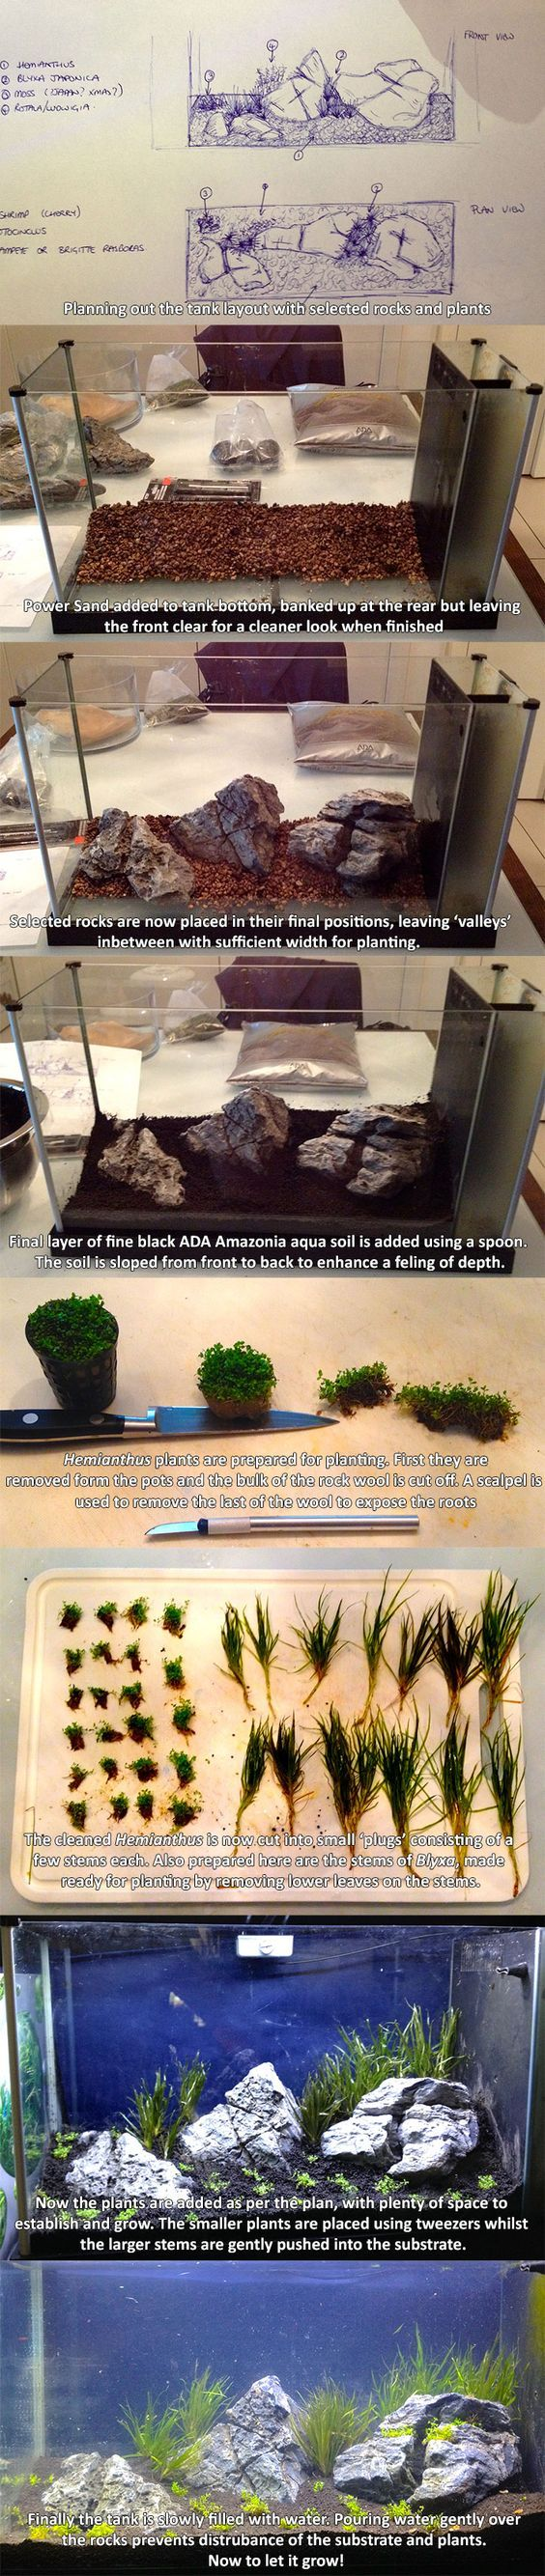 Here is a step-by-step guide to a Iwagumi style set up I recently did. This is a 5 gallon Fluval tank, so really small, and sits on a bookcase in the living room.: